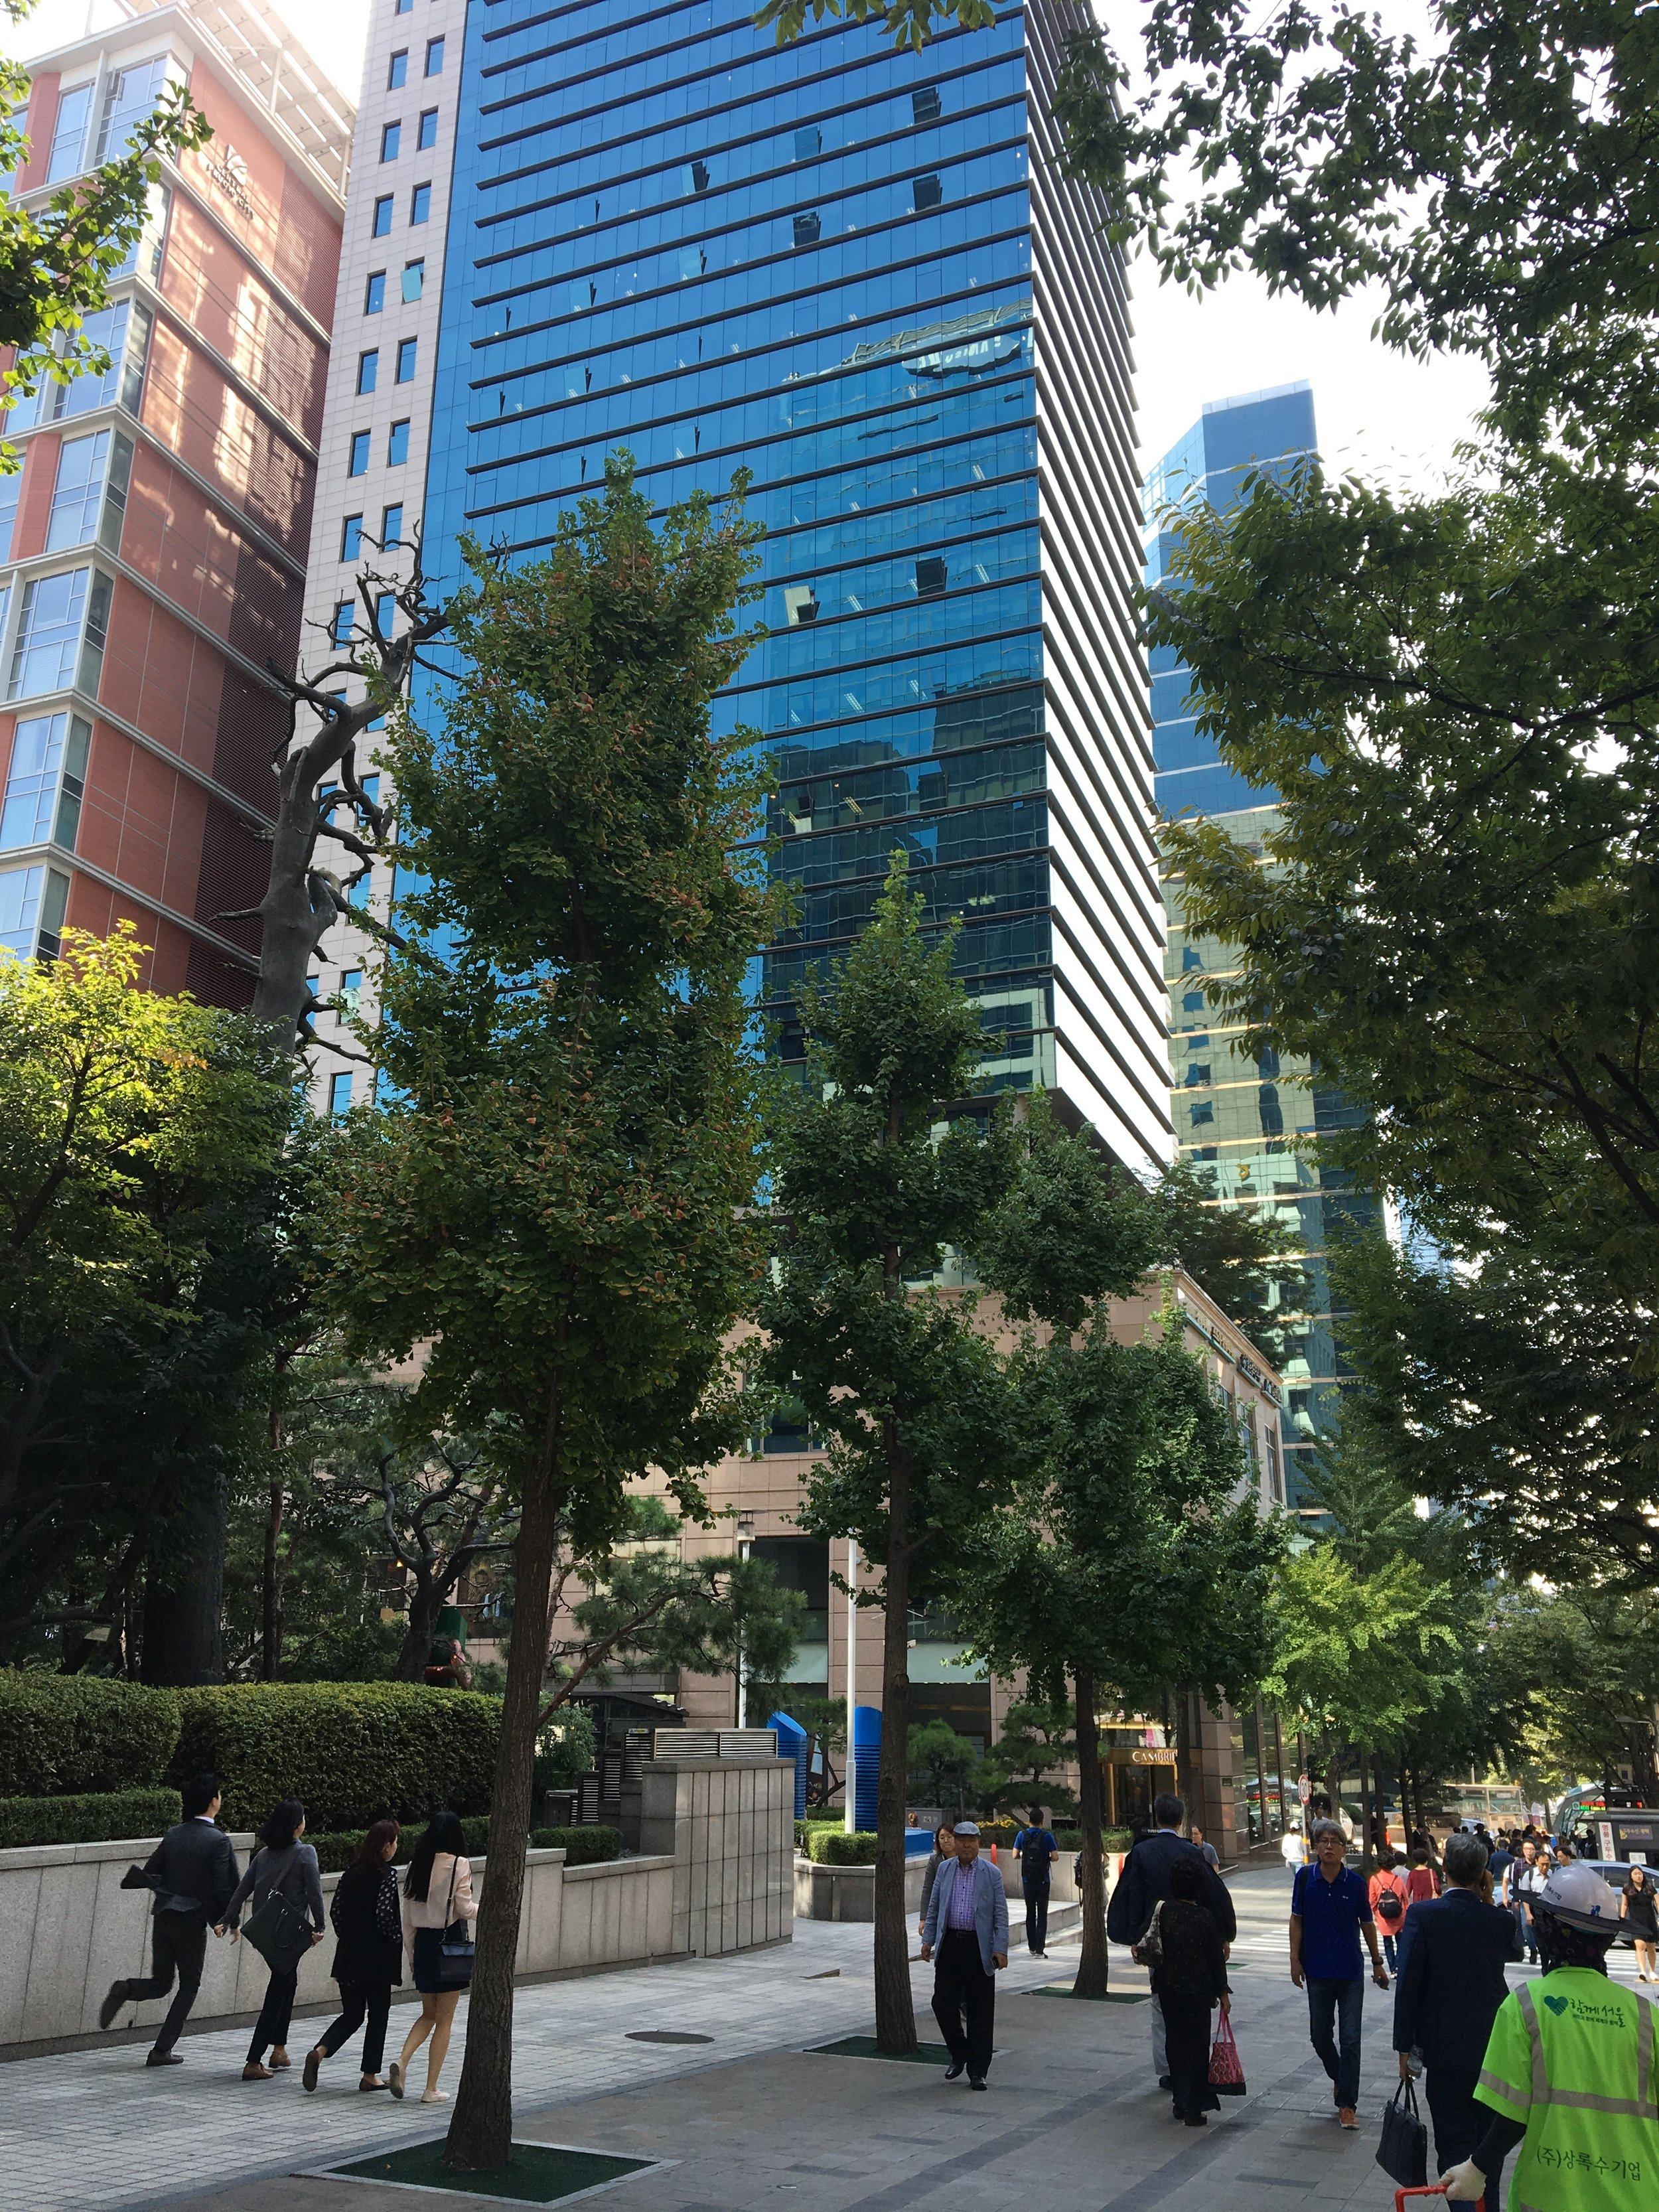 2. Take a right turn (opposite direction from bus) - when you get off from the bus and walk down to Gangnam station exit #1 (about 2 mins)